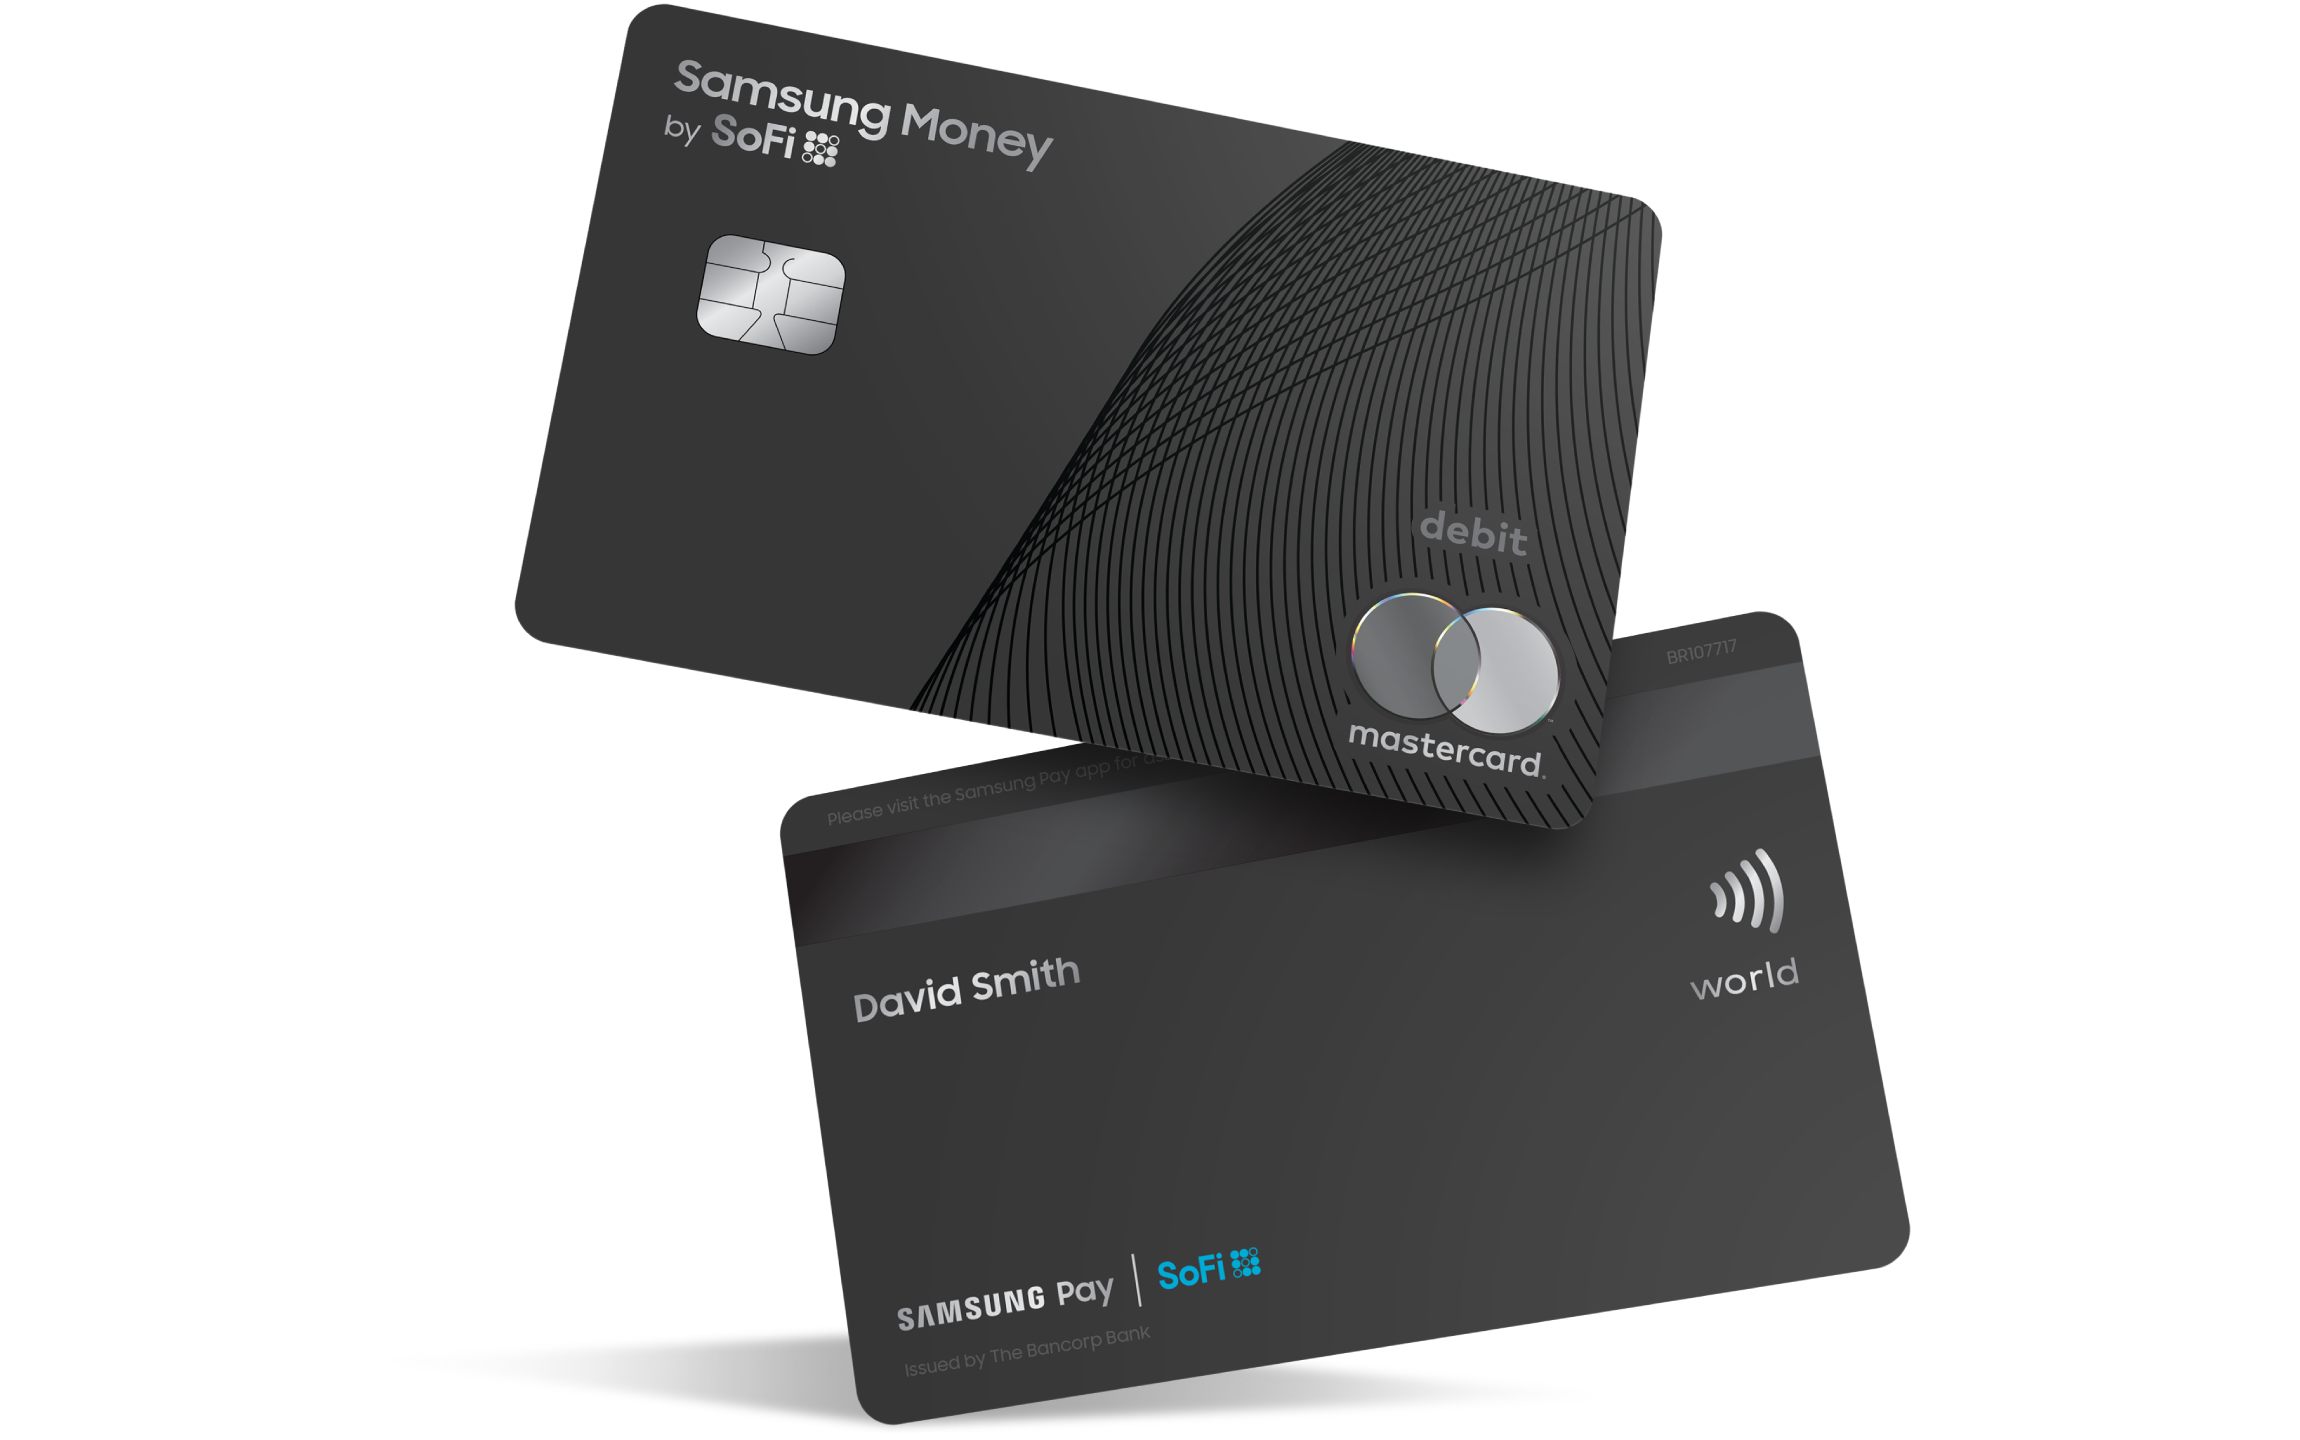 Samsung Money by SoFi